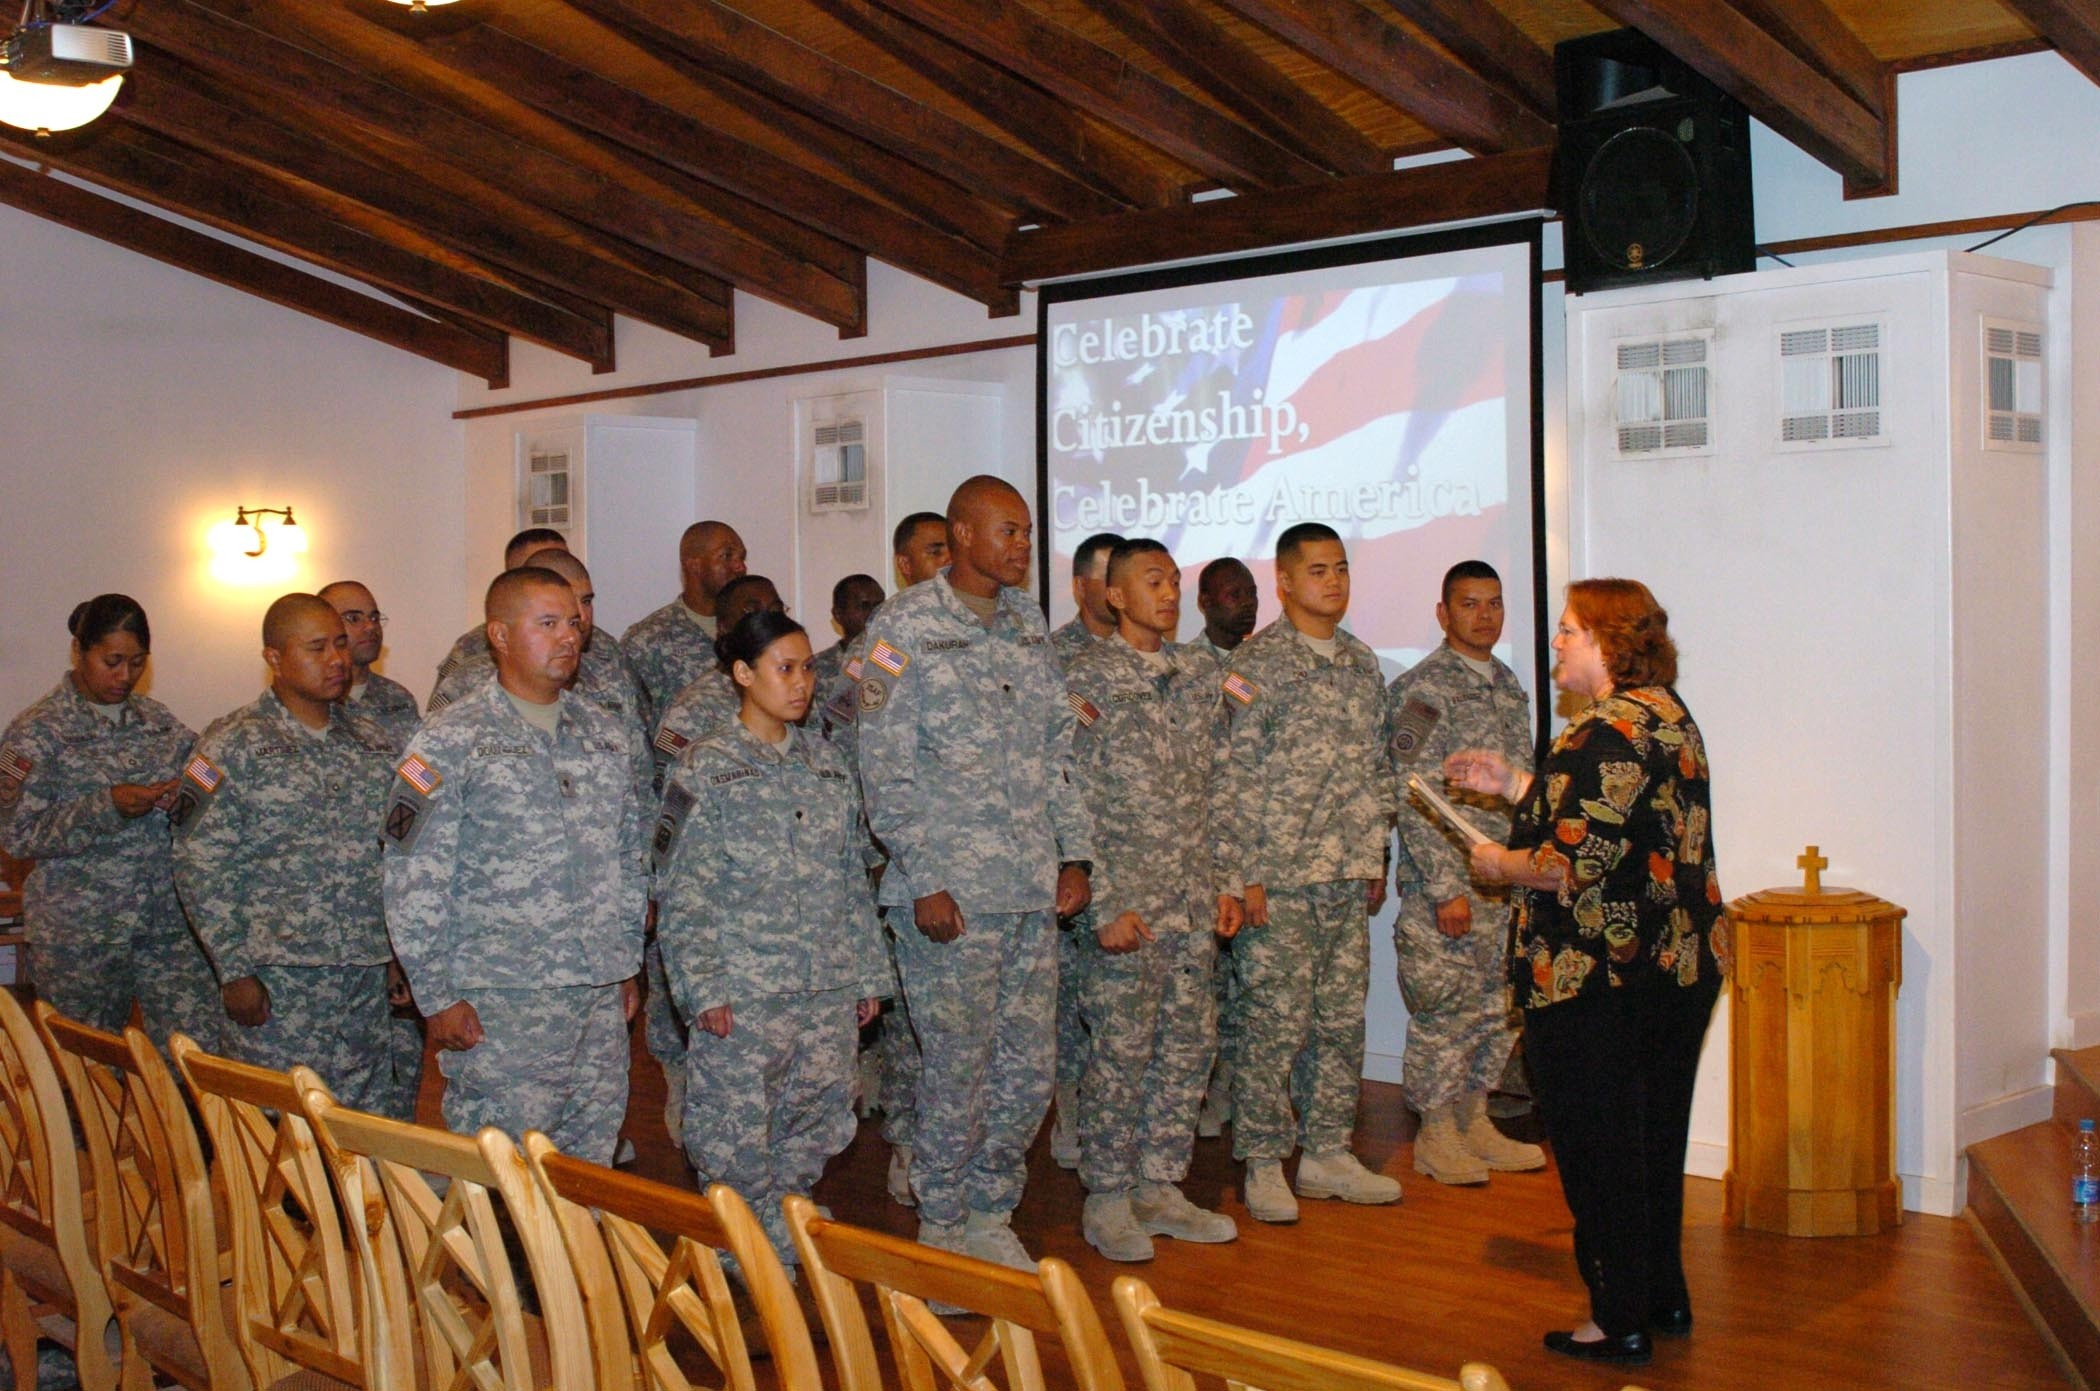 iers in become u s citizens article the u s citizenship and immigration services officer in charge speaks to the soon to be u s citizens prior to their naturalization ceremony